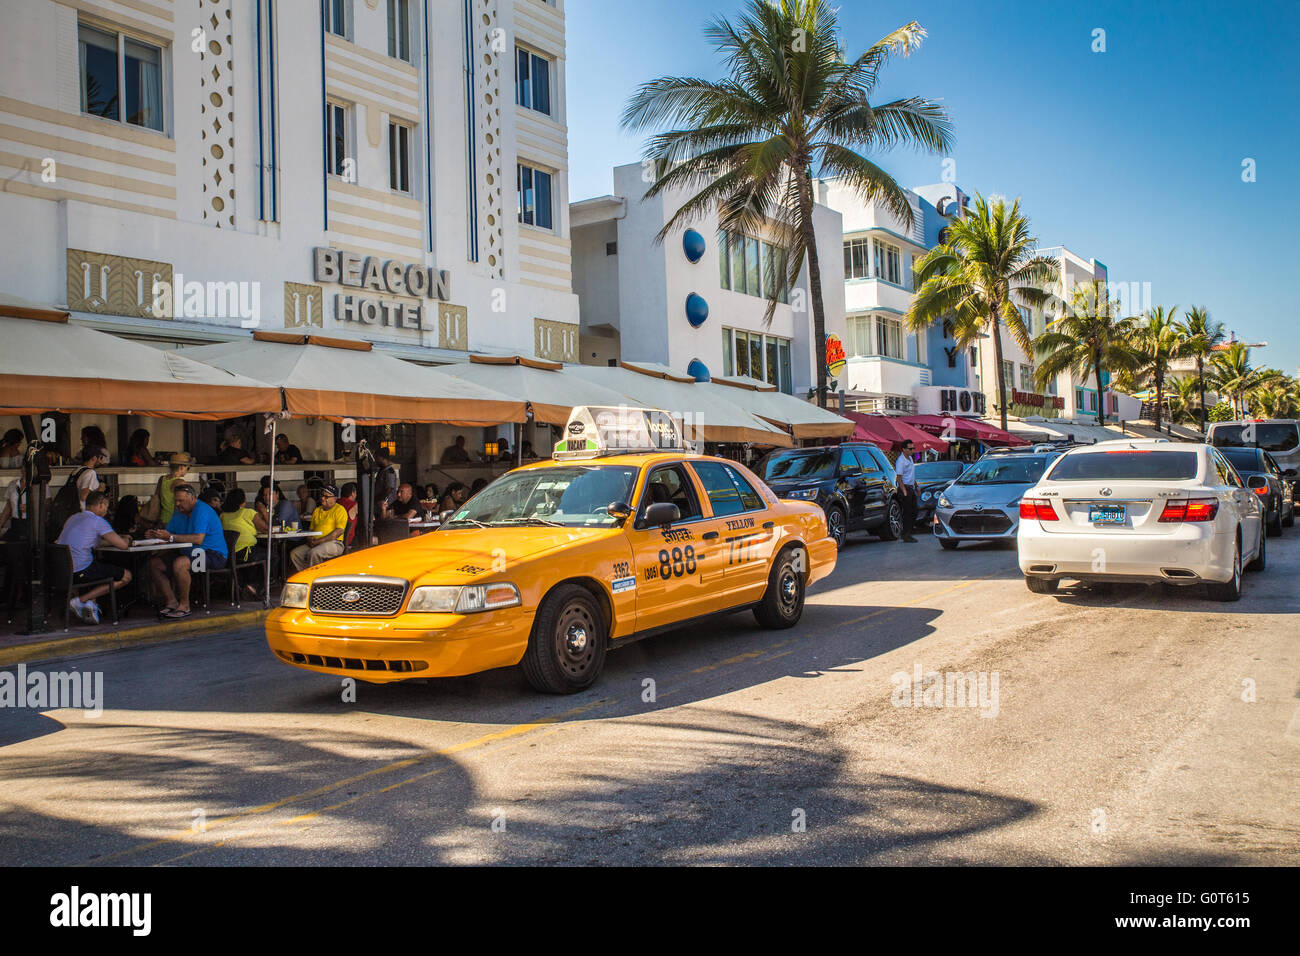 Street scene from South Beach Miami with cars and taxi - Stock Image